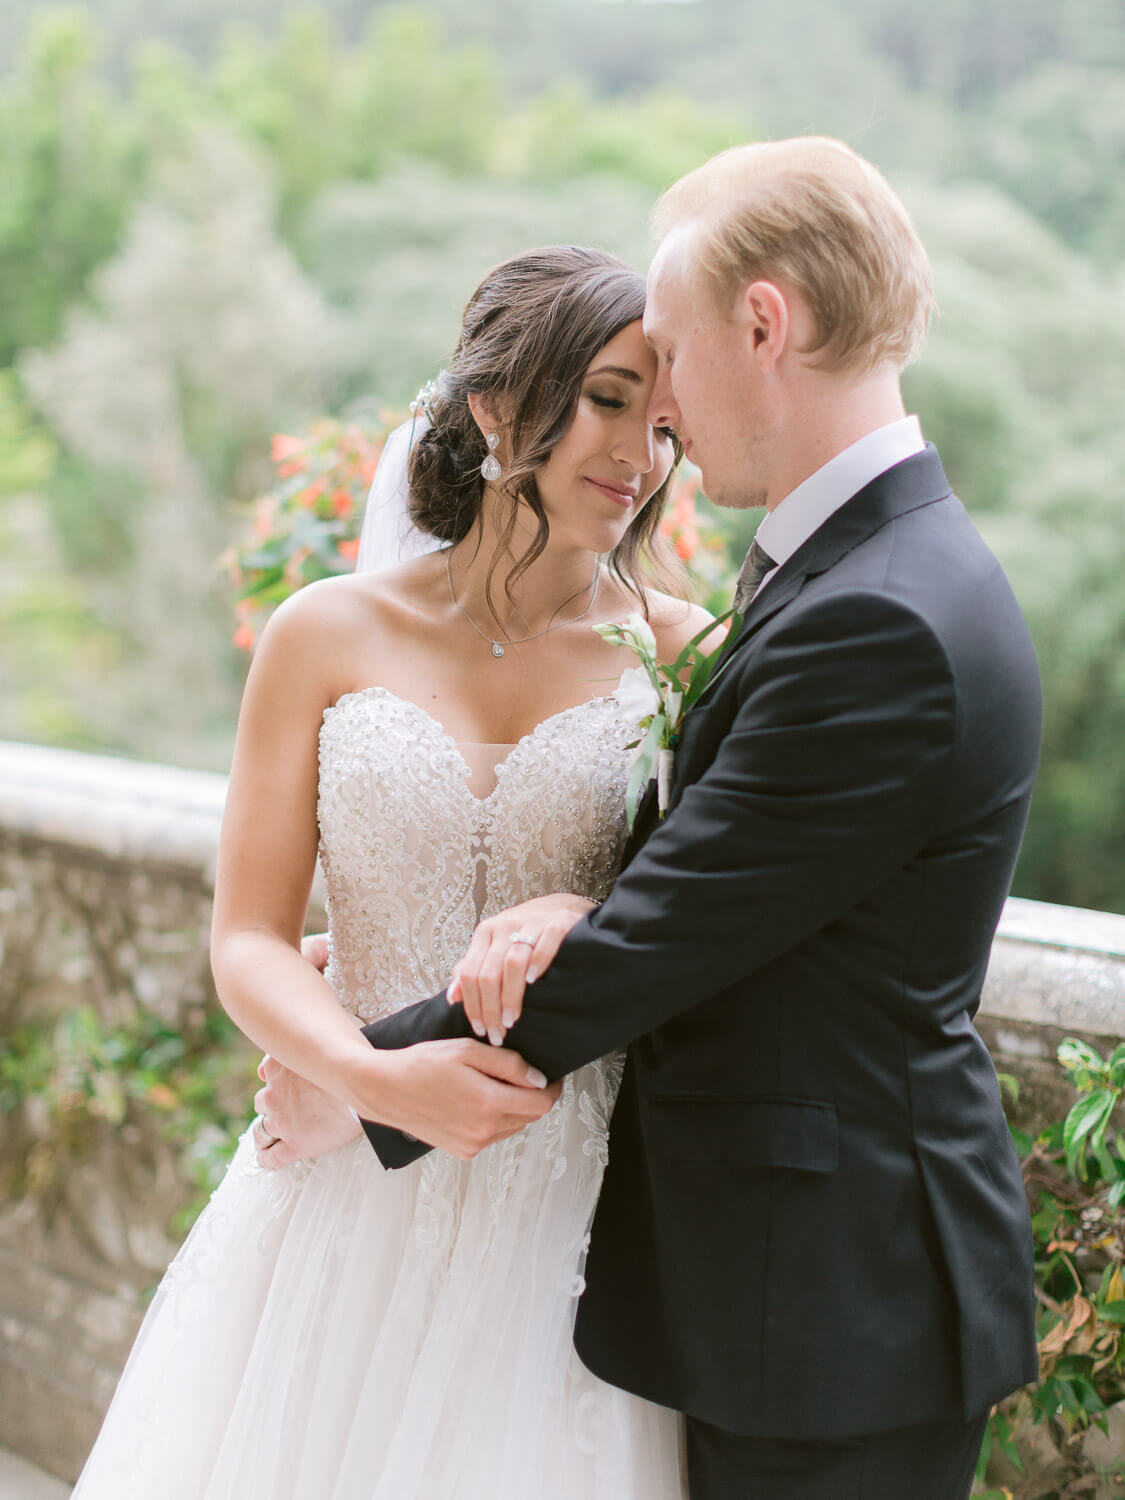 romantic couple after the wedding in Monserrate Palace Sintra gardens by Portugal Wedding Photographer